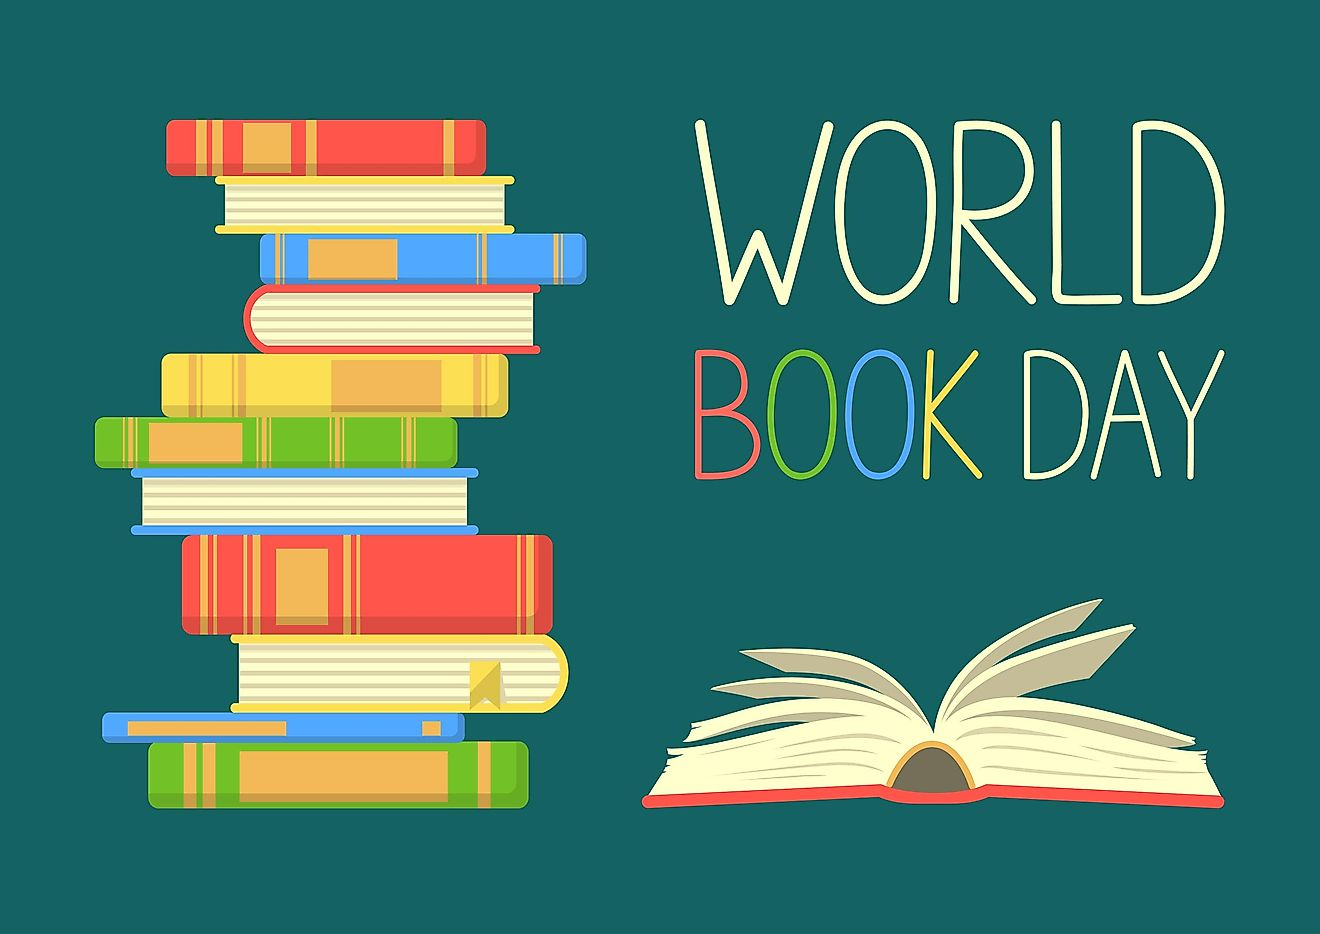 April 23 is World Book Day.